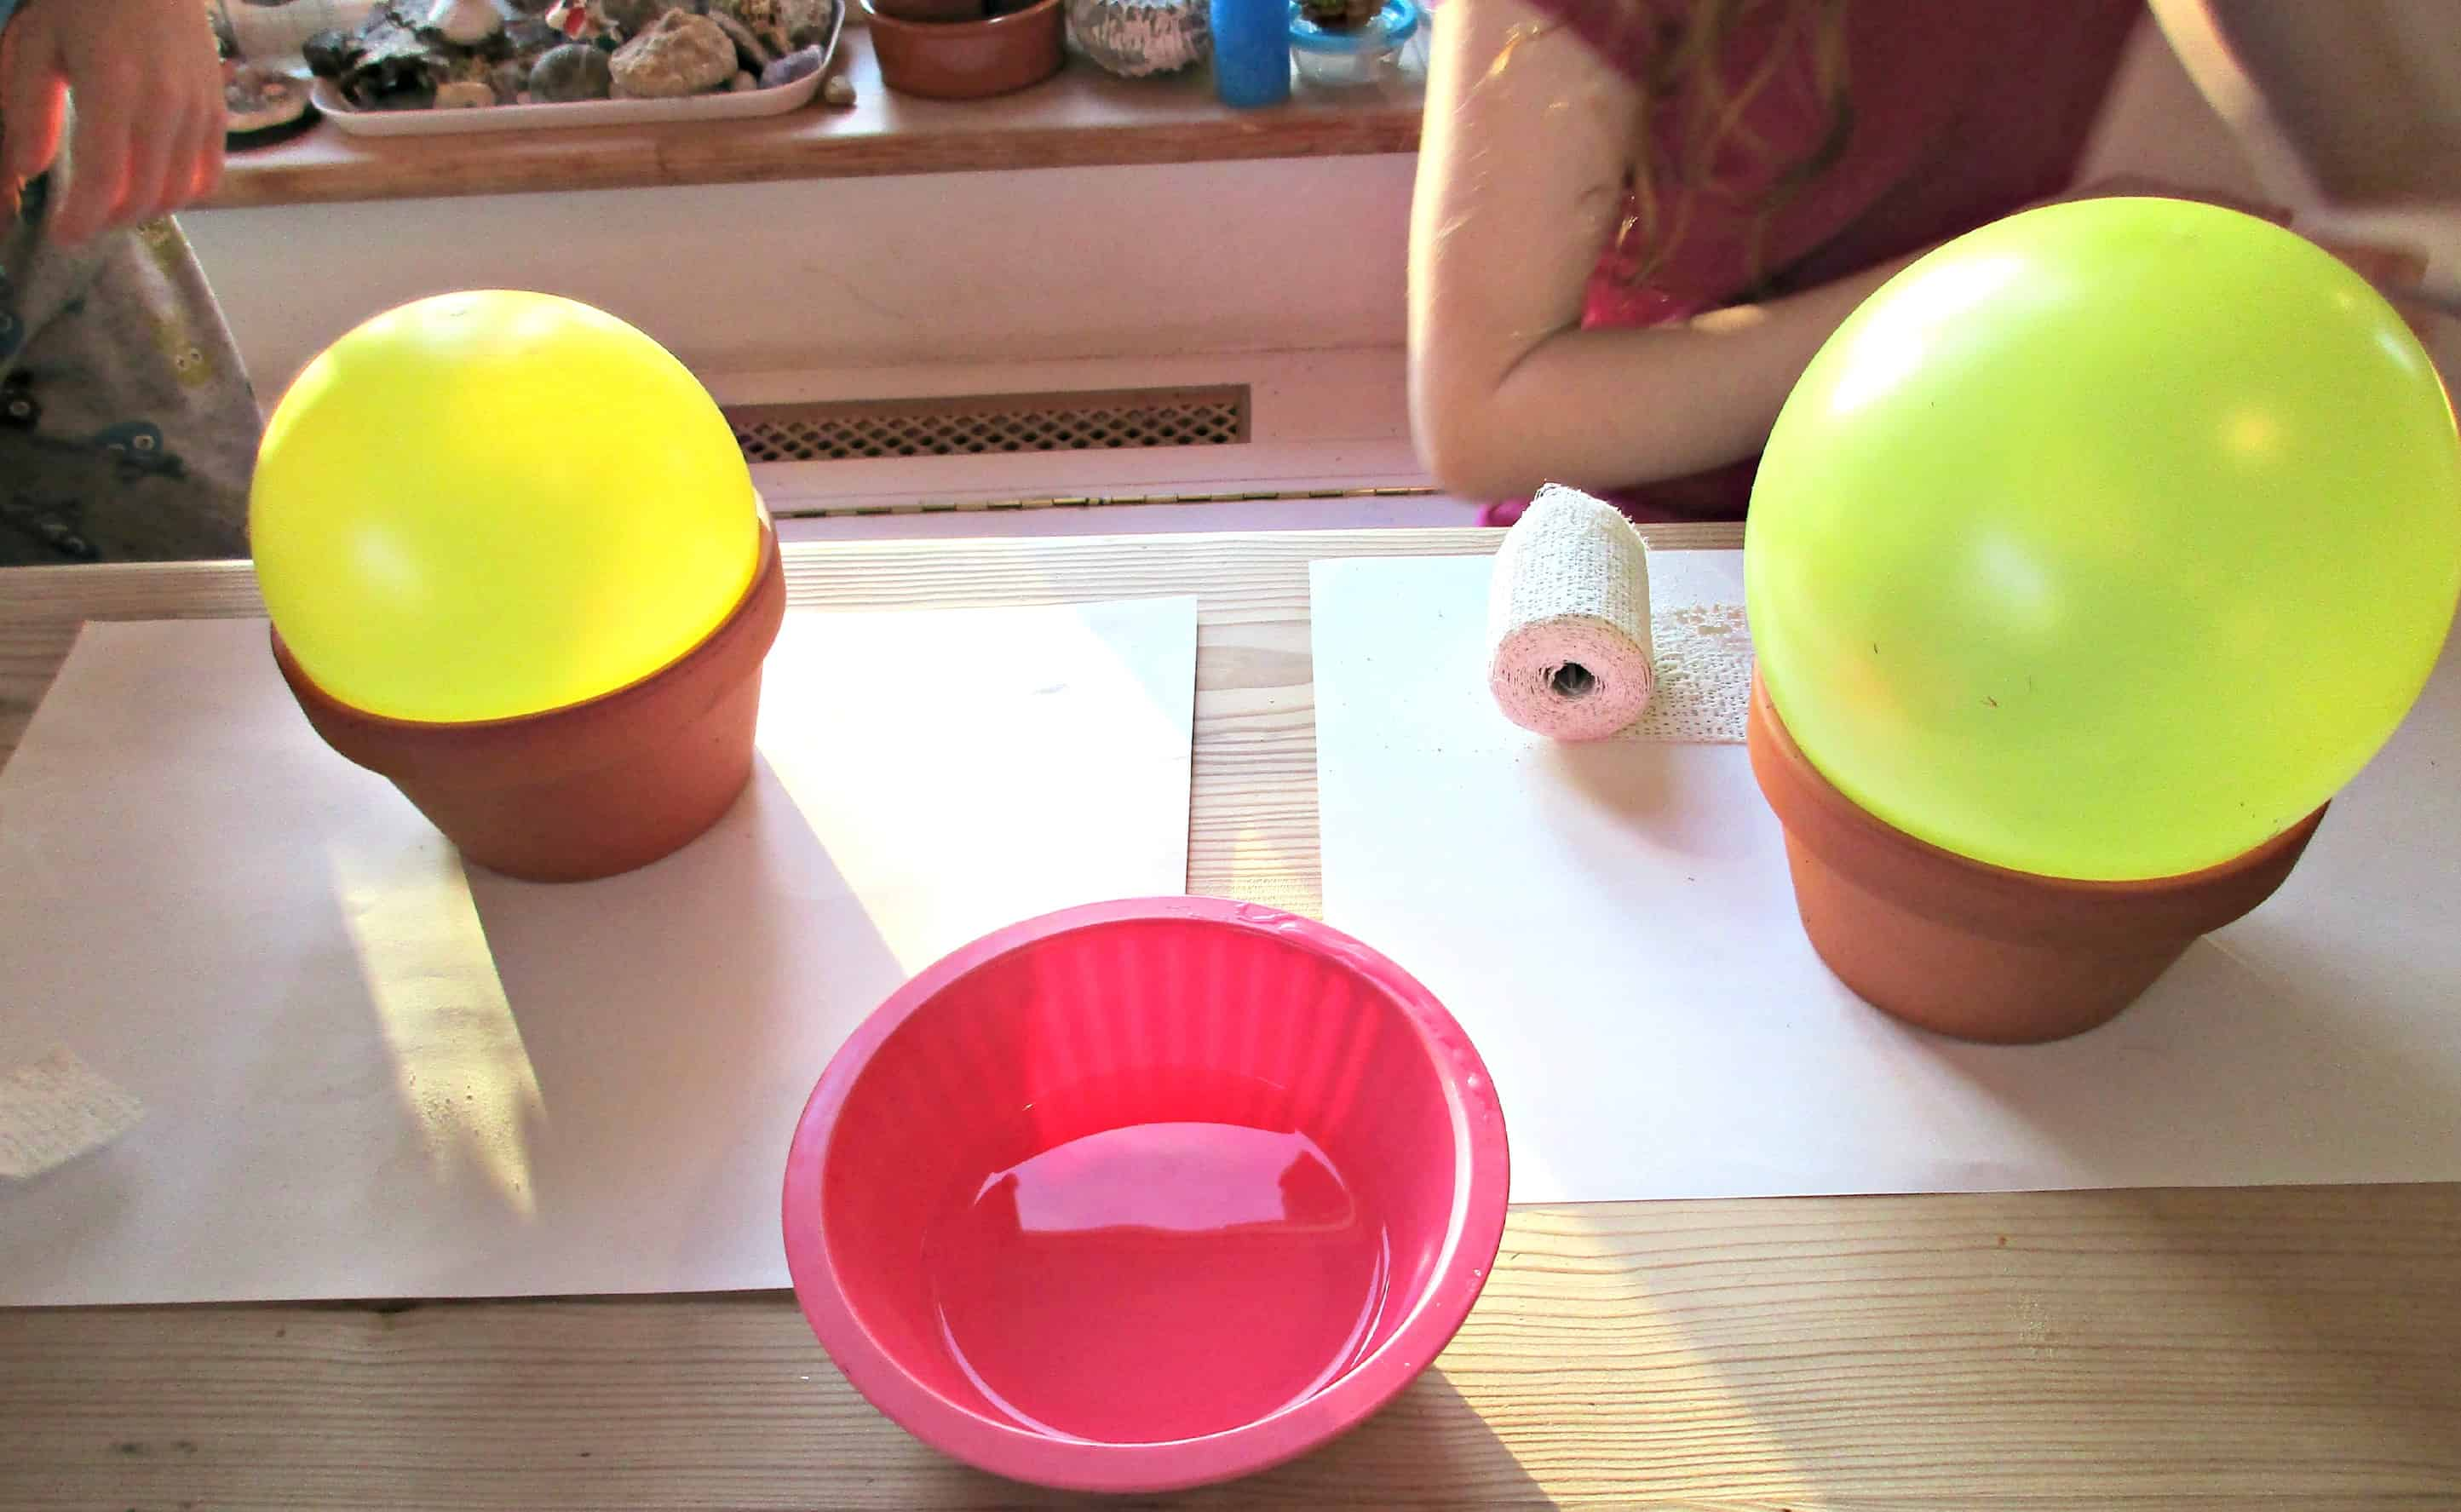 Modroc is Plaster of Paris impregnated gauze which is easy to use and shape, and great for sculptures. Here we show you how to use it to make Modroc bowls.